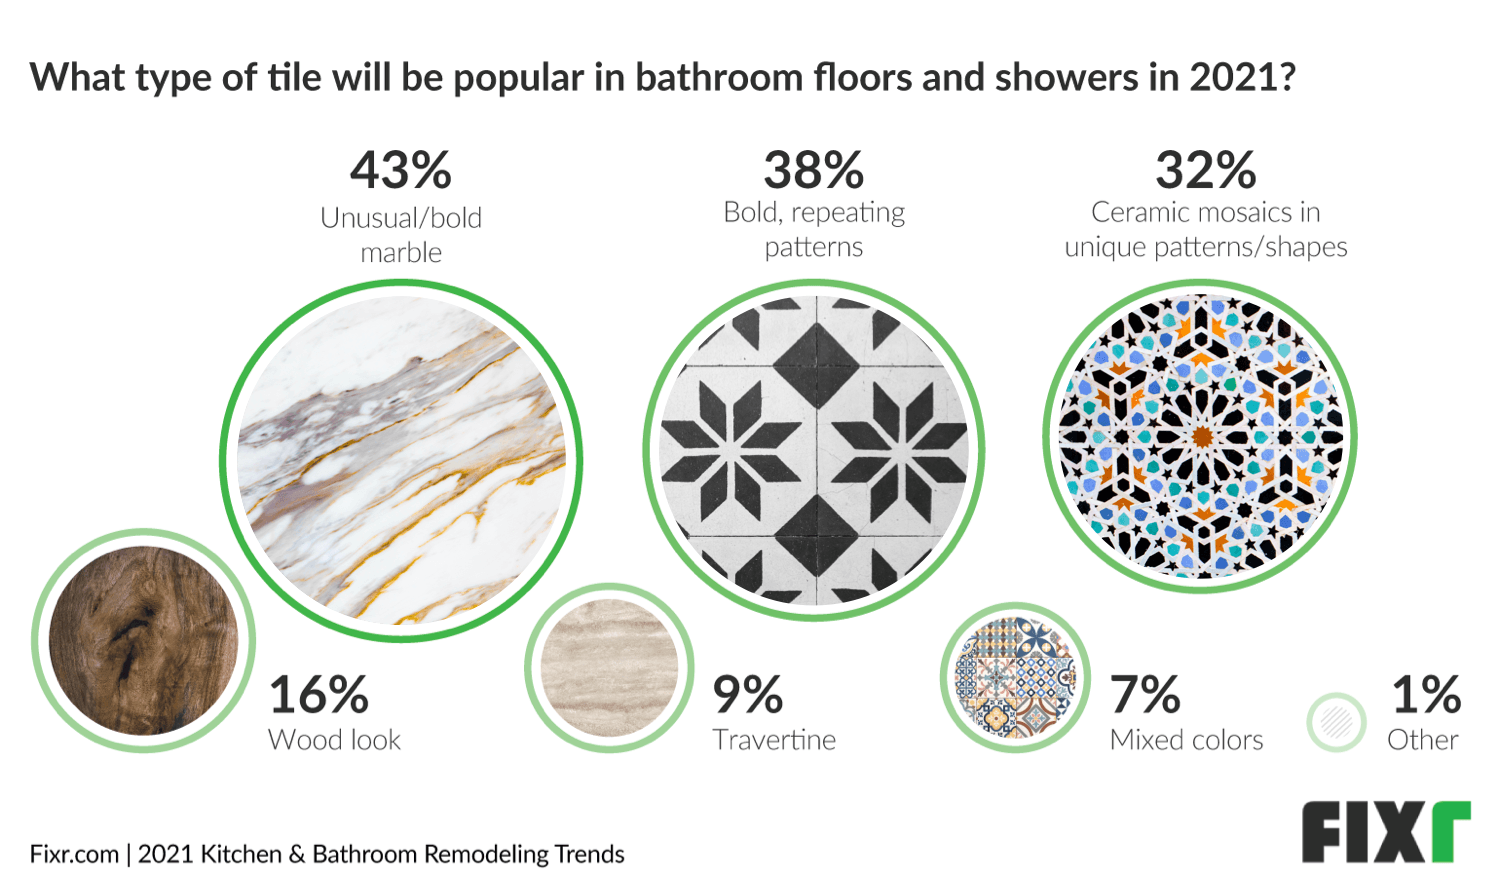 Bathroom Trends 2021 - Unusual Marble and Bold Patterns